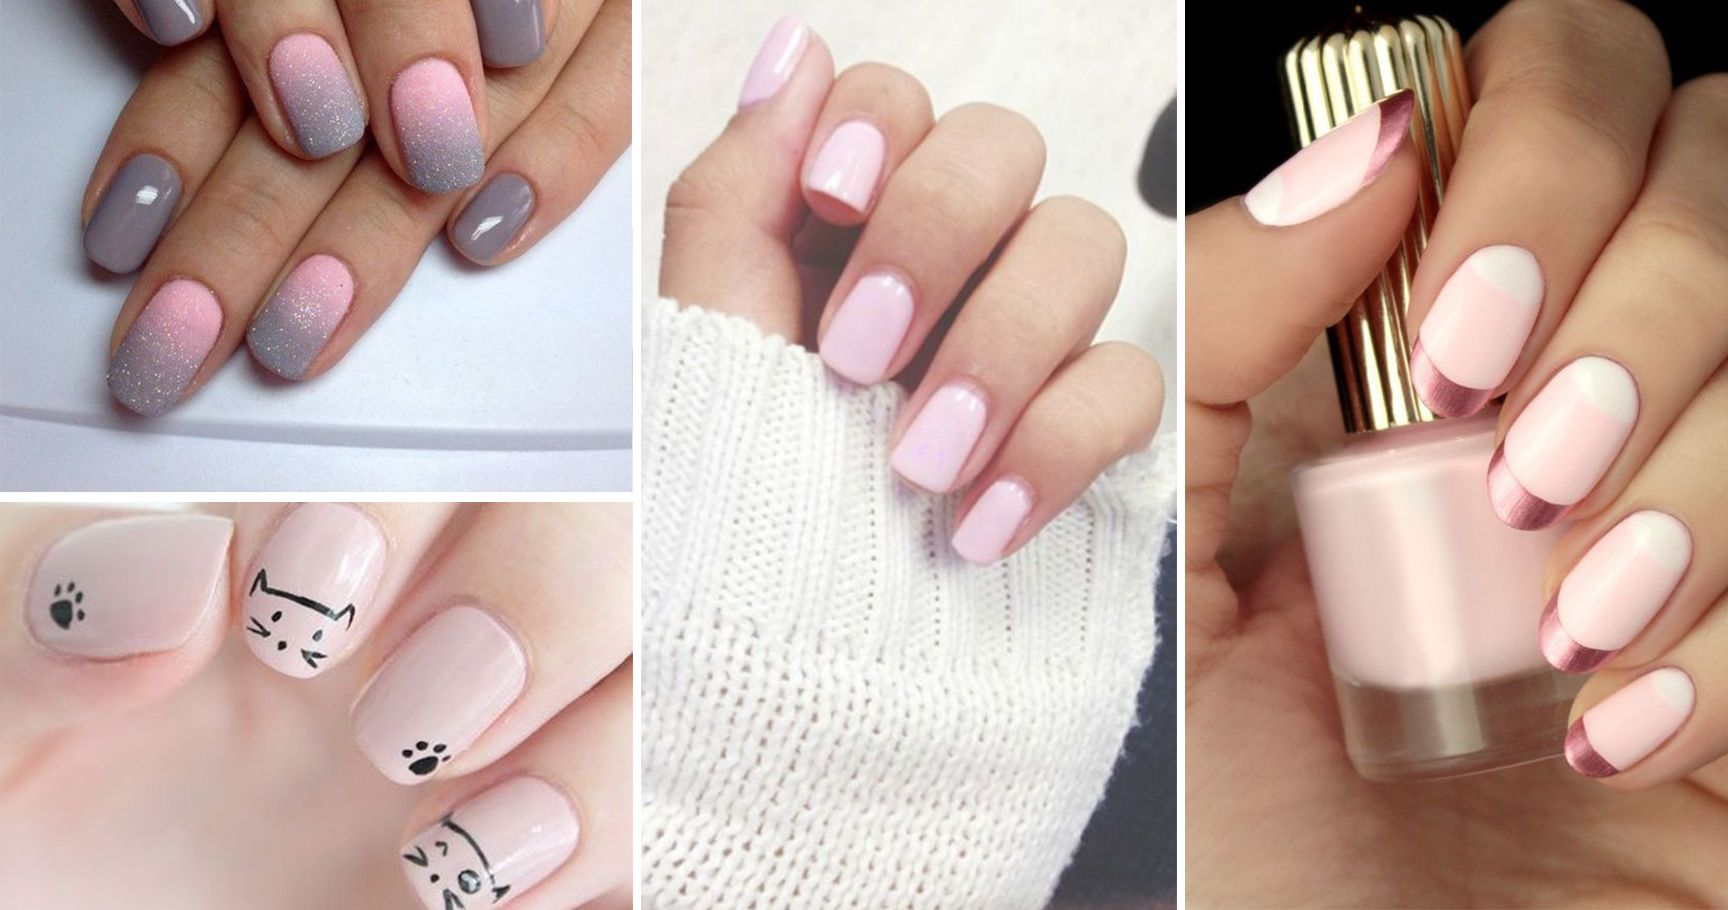 16 Pretty In Pink Manicures For The Non-Girly Girls